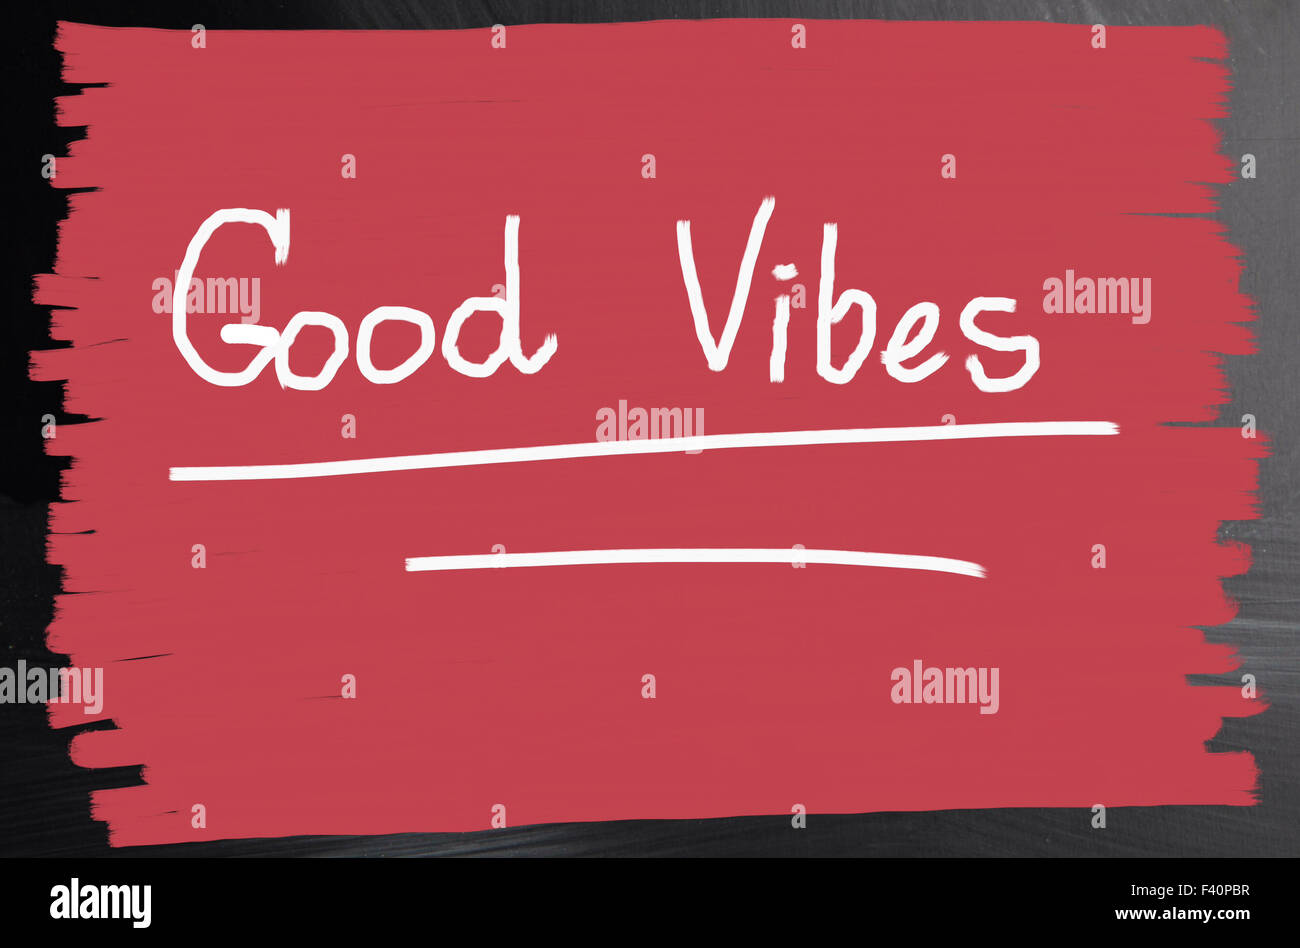 Vibes Stock Photos & Vibes Stock Images - Alamy